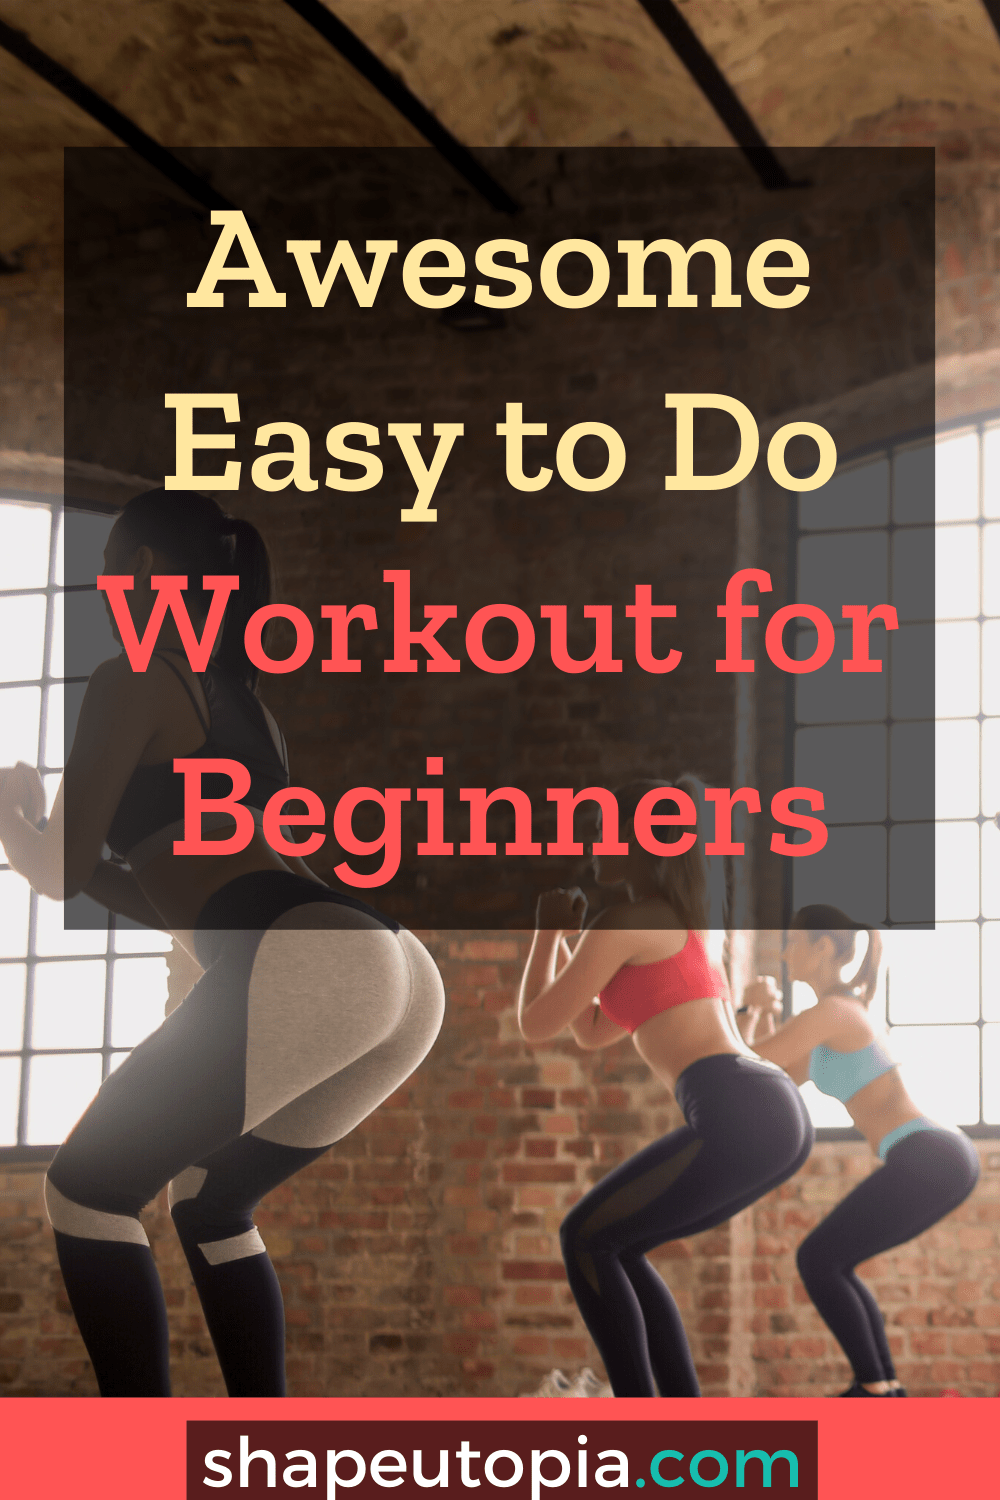 Awesome Easy to Do Workout for Beginners